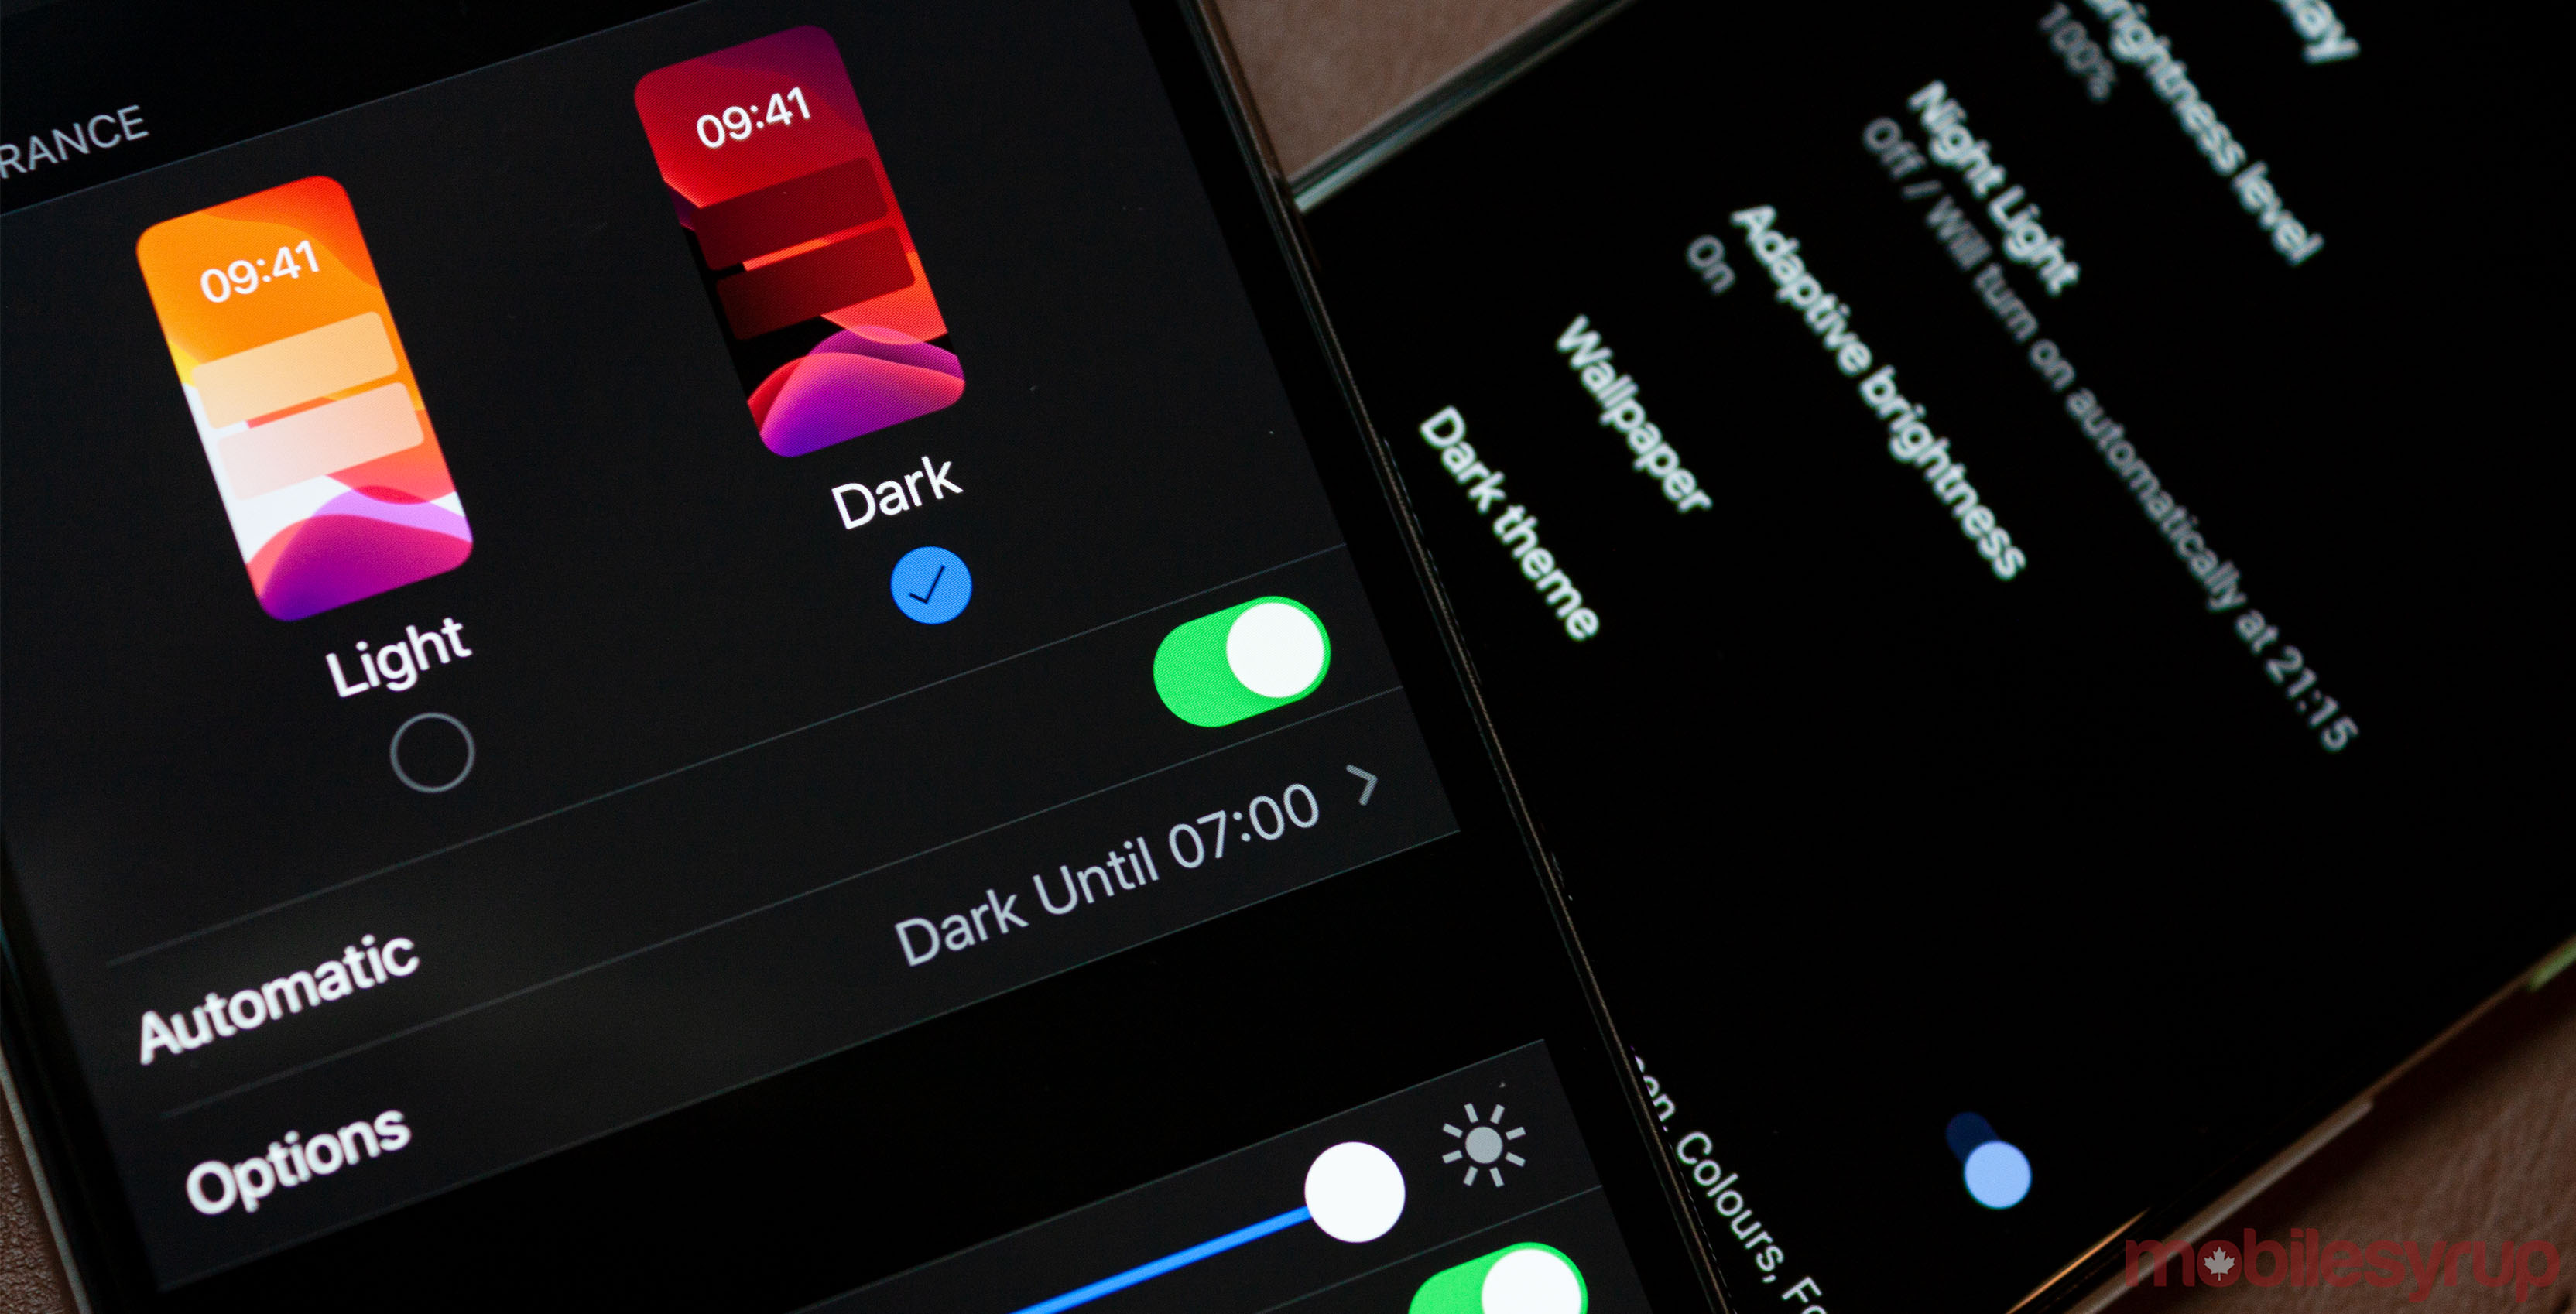 Dark mode on iOS and Android